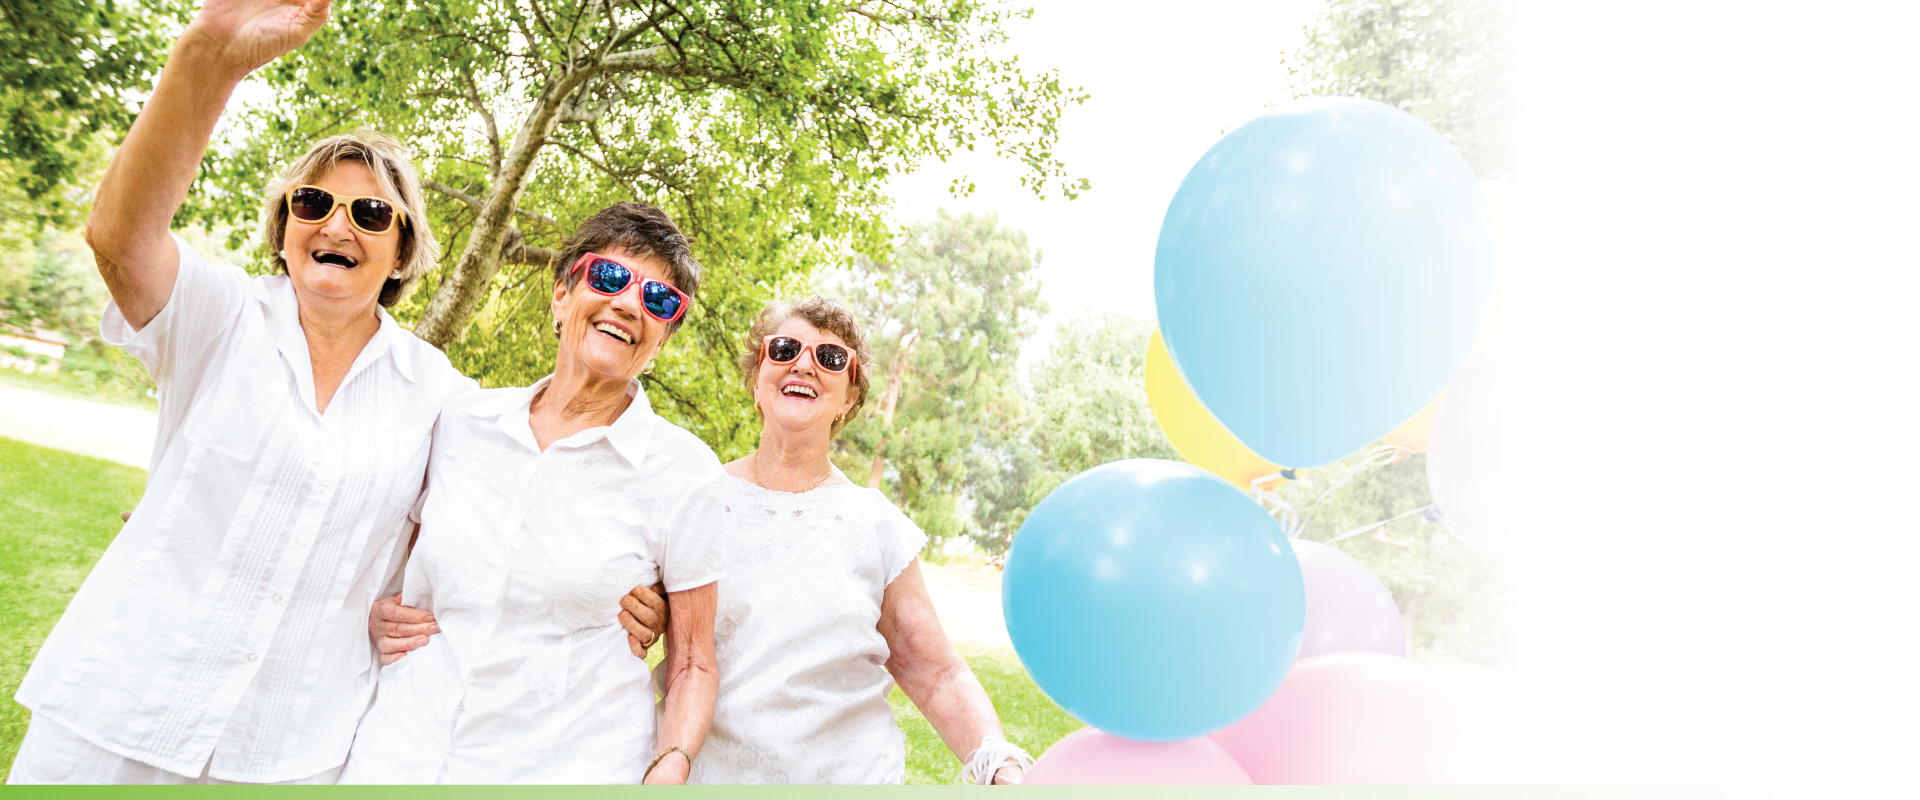 Group of senior women walking together with balloons